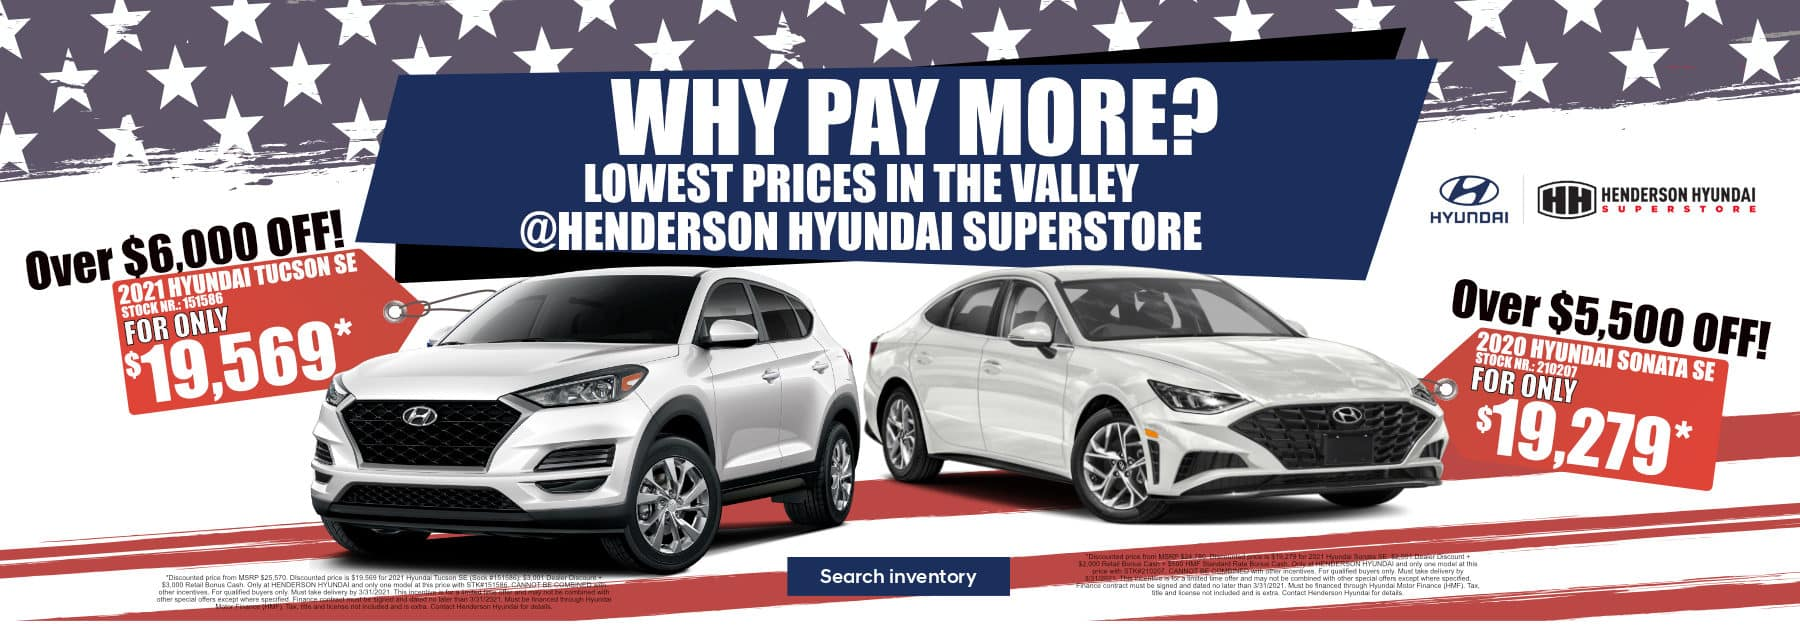 March_2021 Wpm Henderson Hyundai